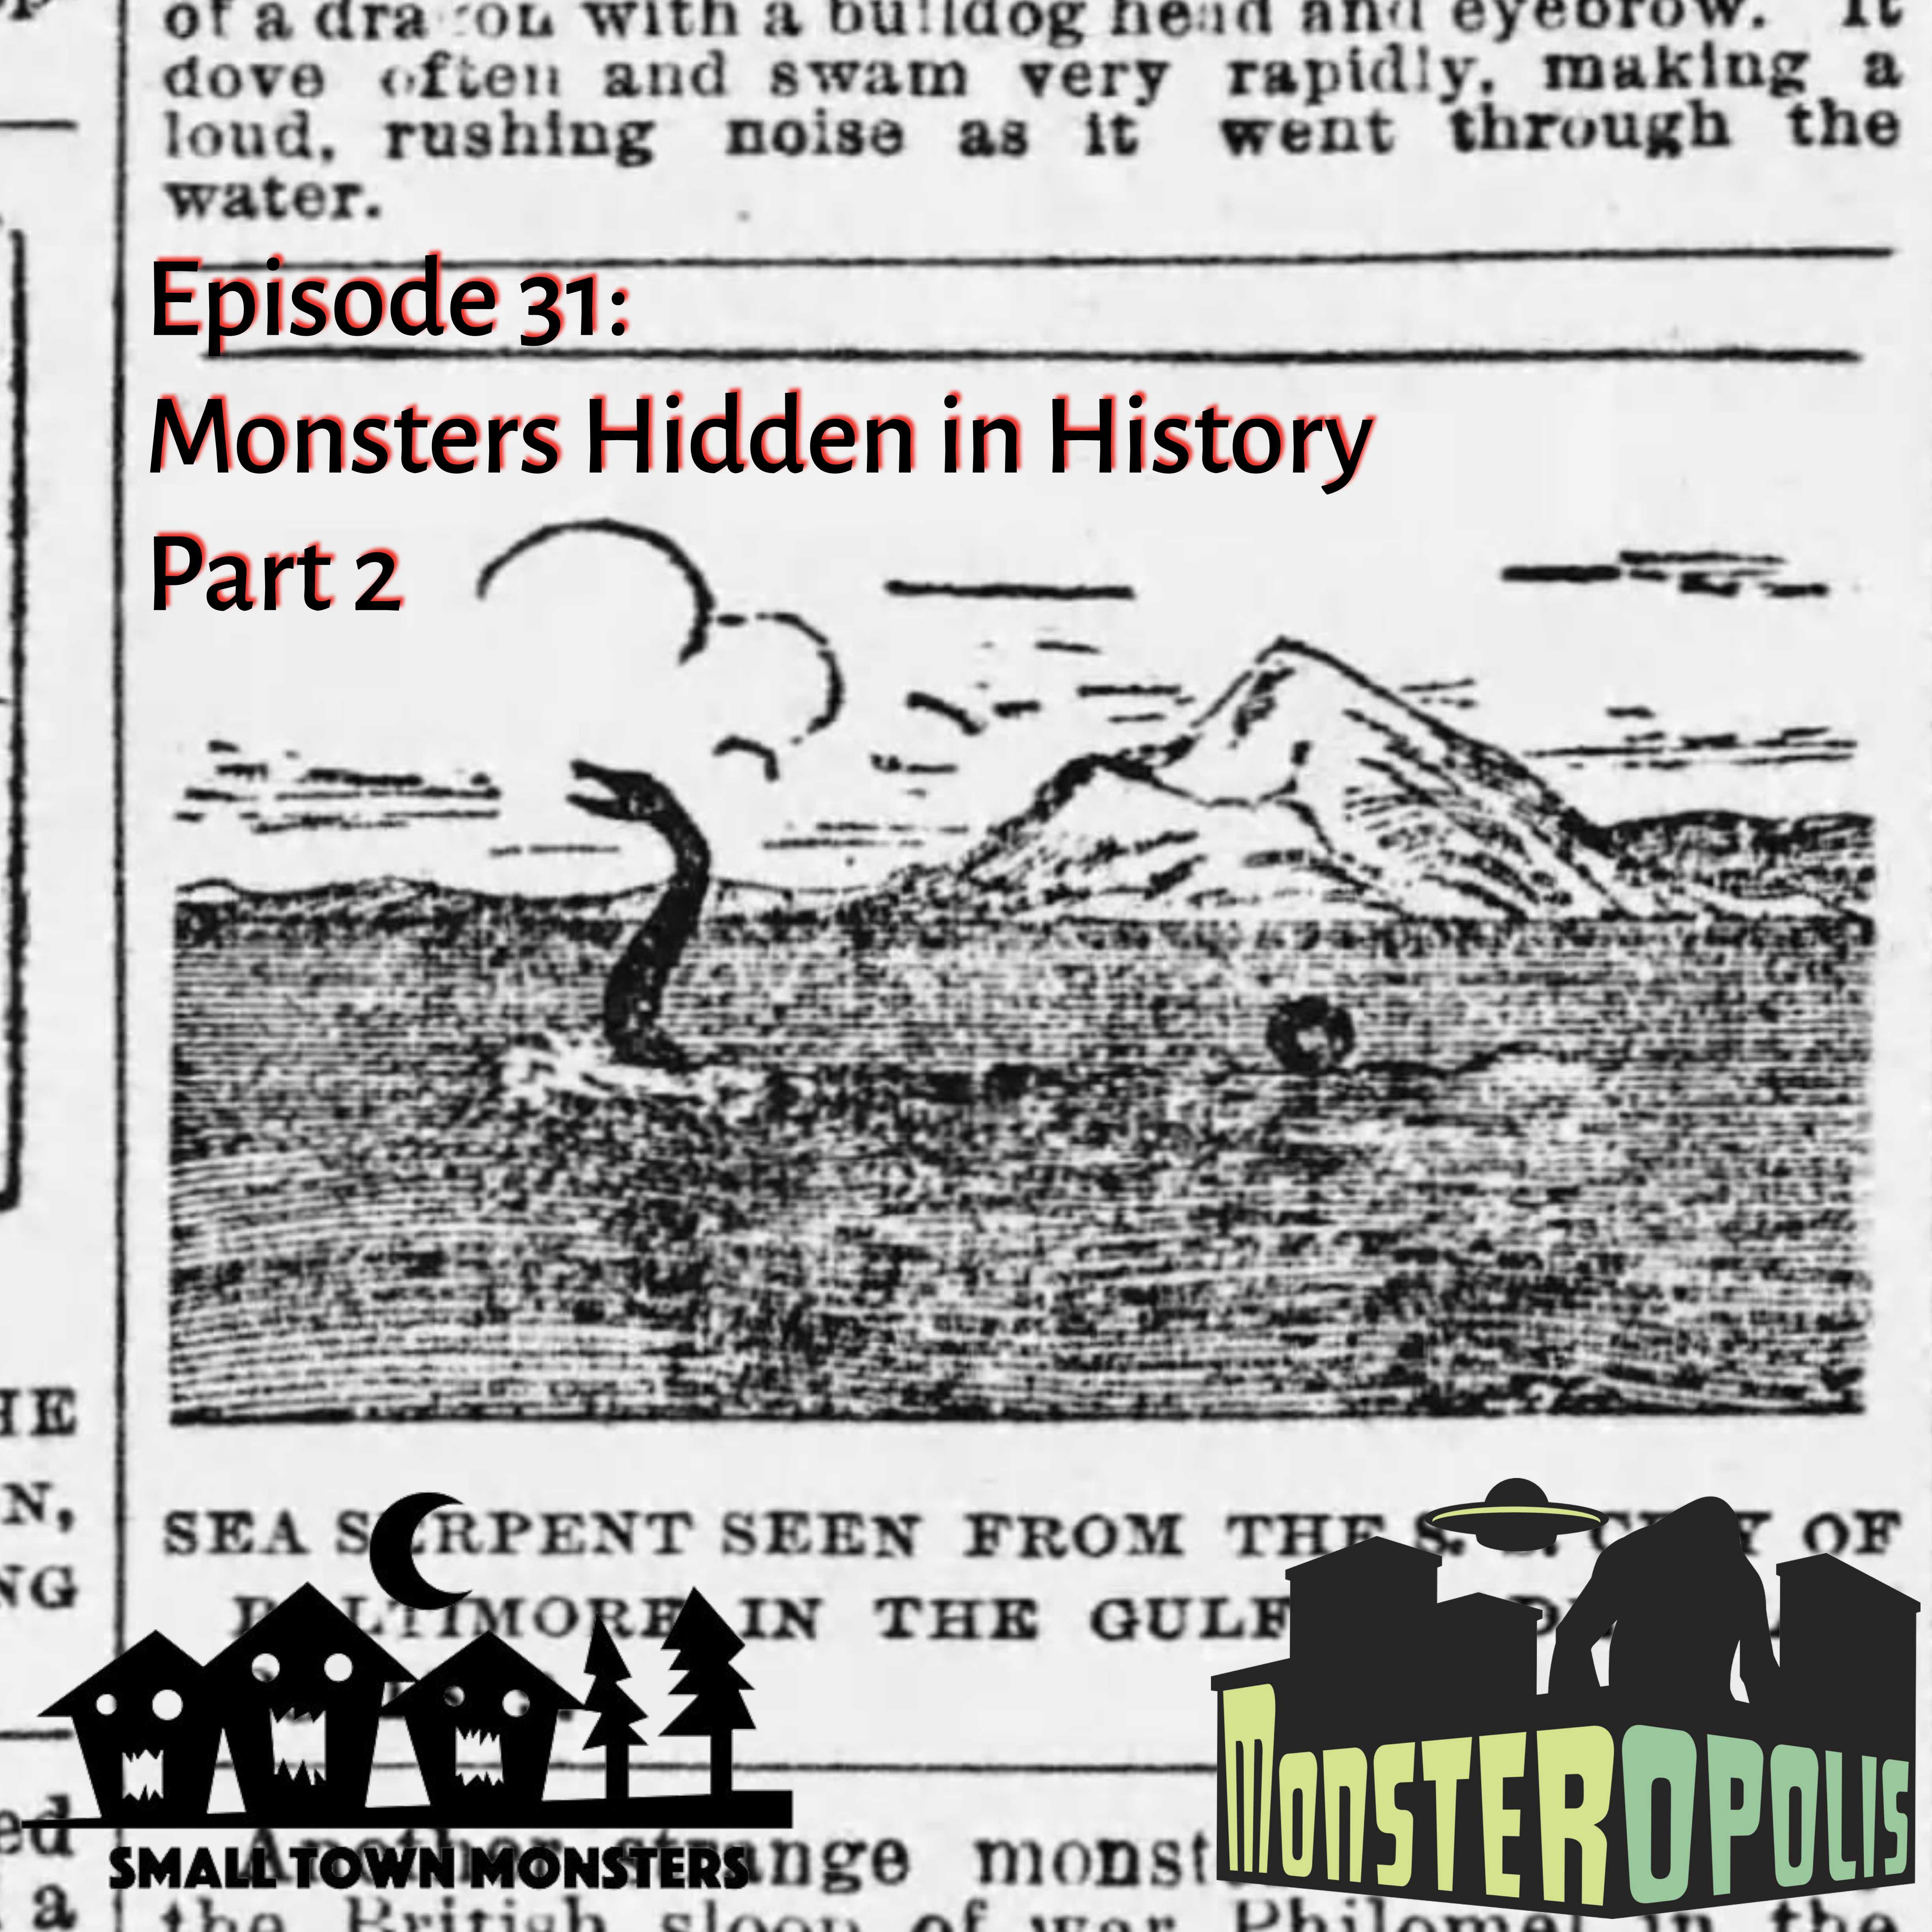 Episode 31: Monsters Hiding in History Part 2